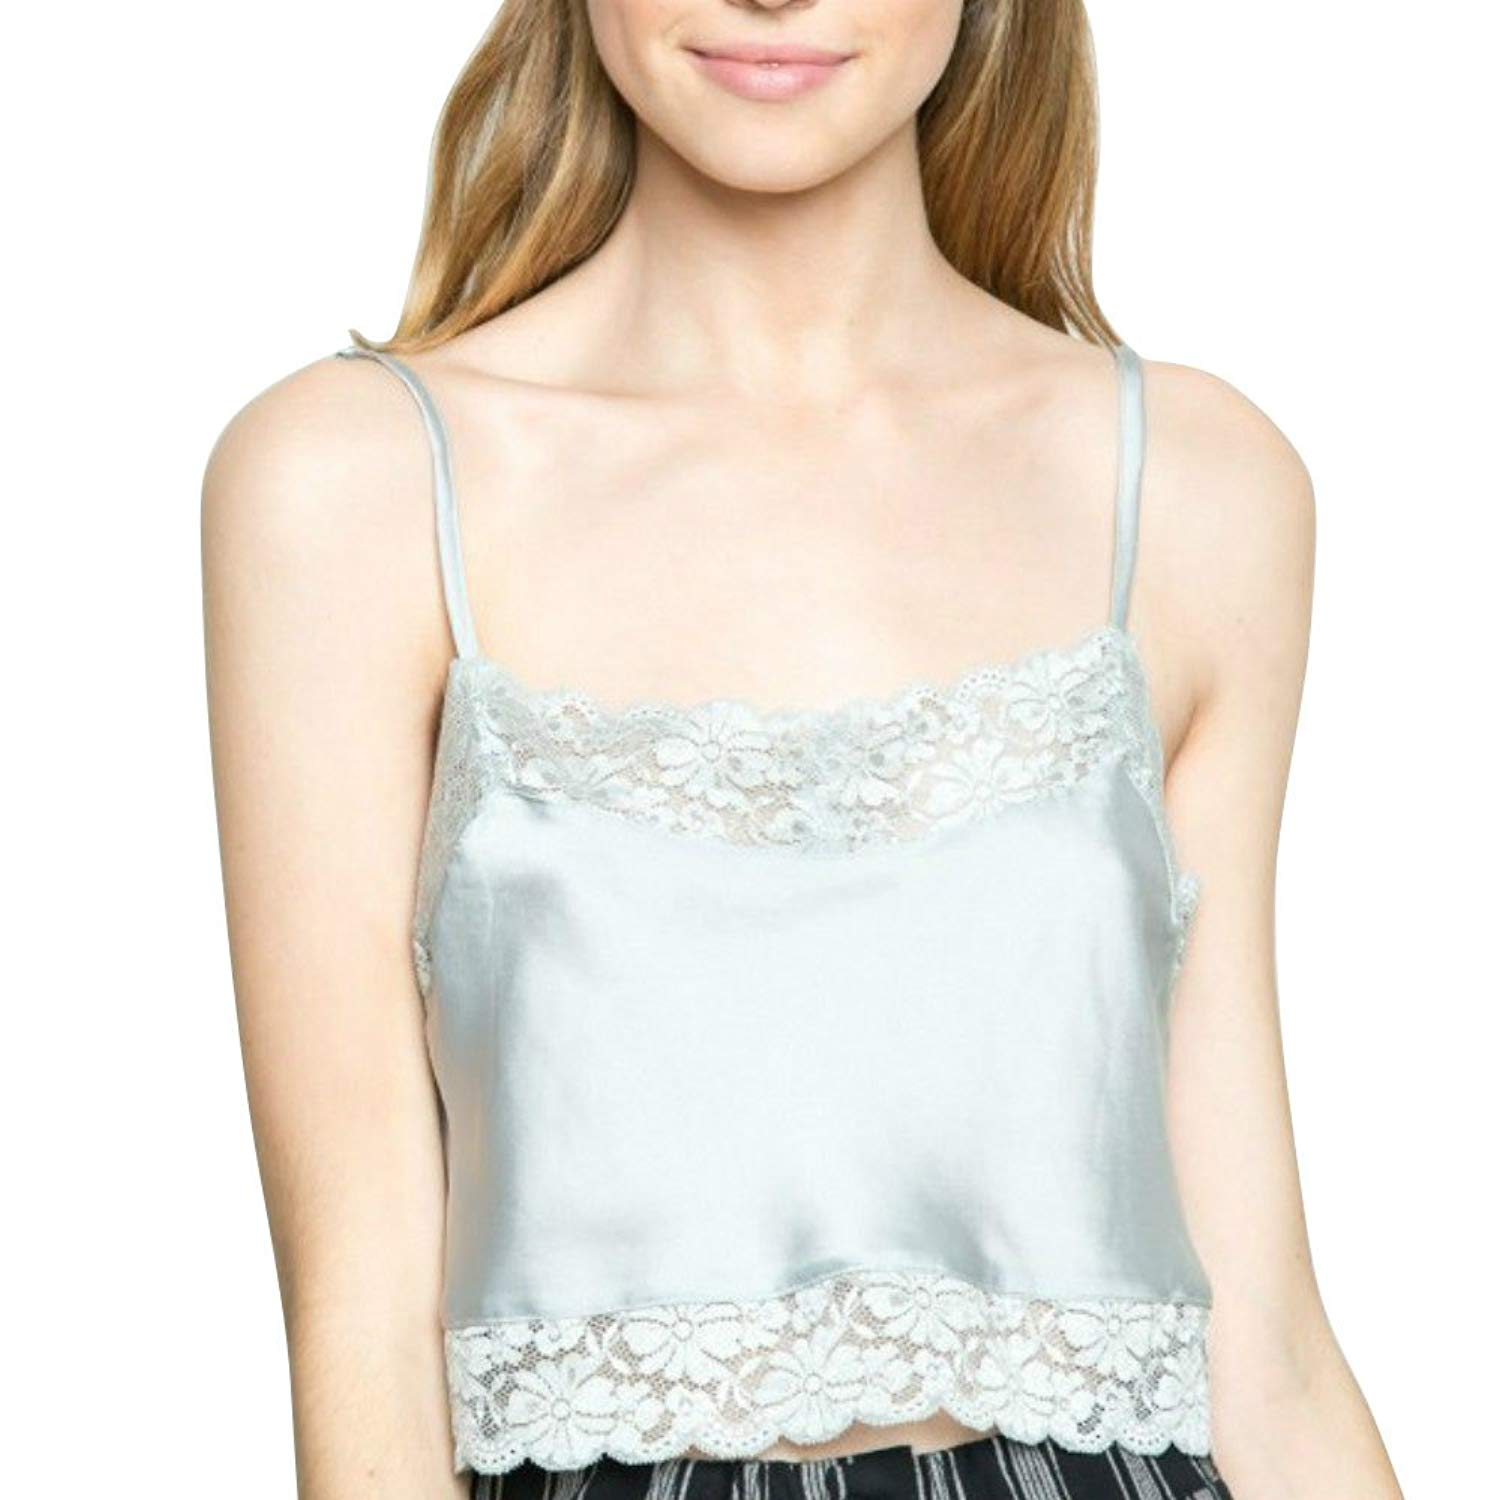 60e97041ce56e Get Quotations · Luckyauction Women s Sexy Lace Floral Bra Crop Bustier  Tank Top Vest Tops